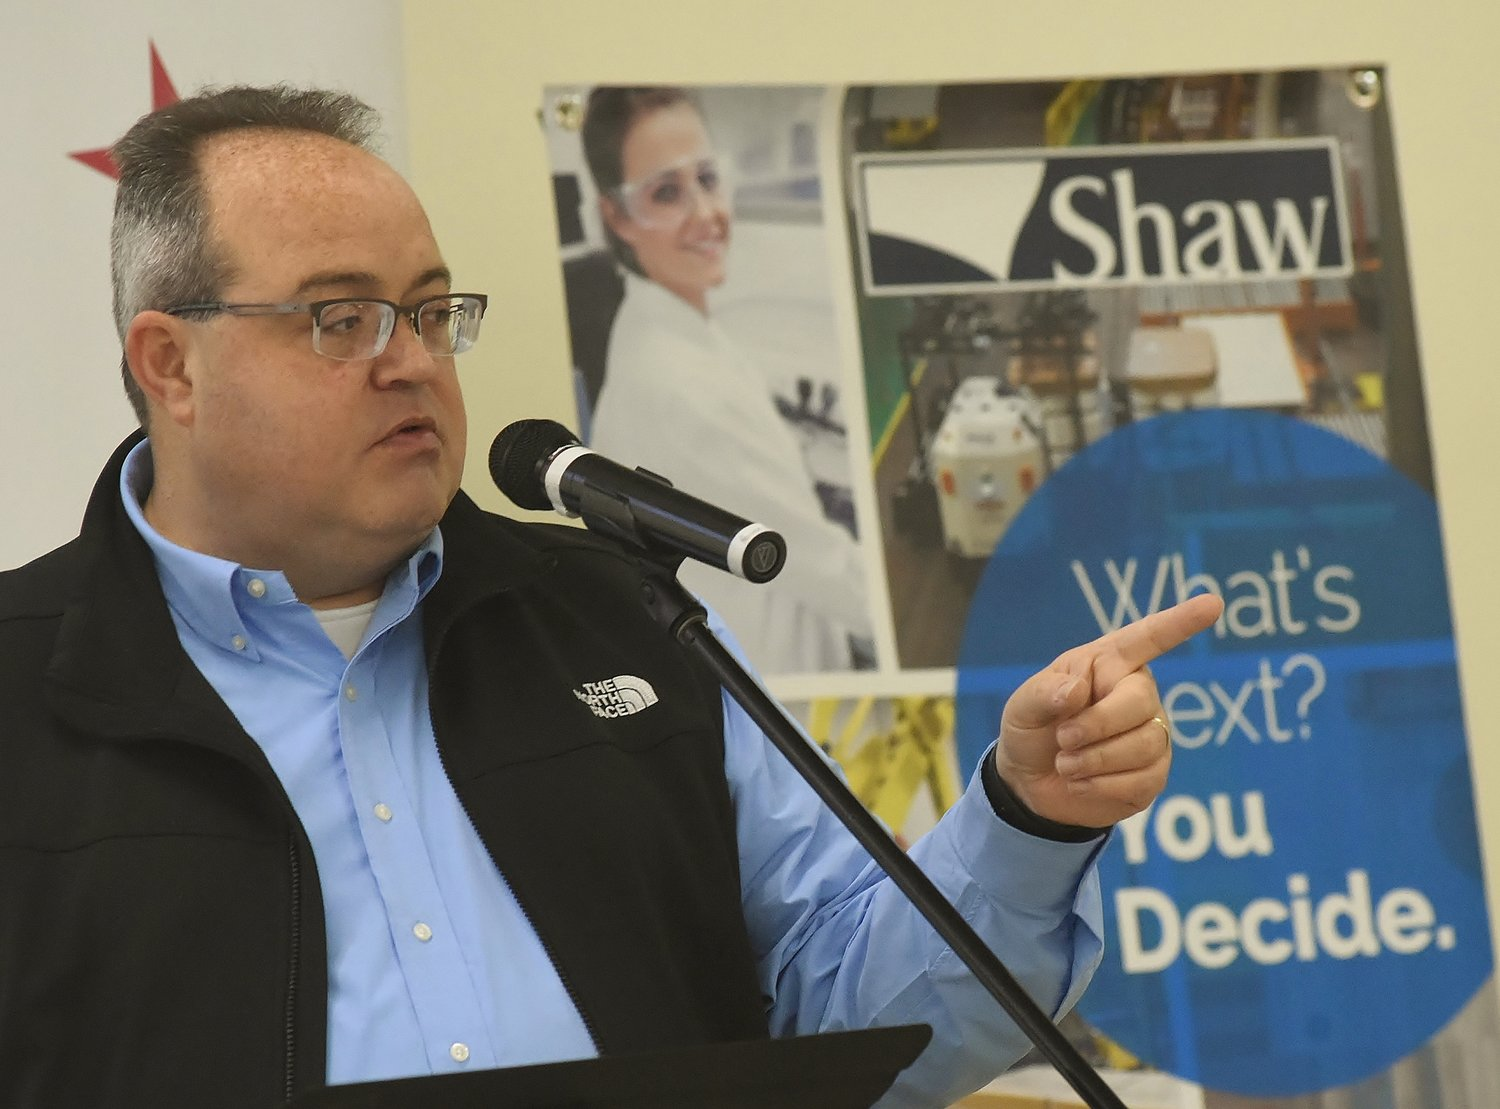 Shaw Industries' Director of International Soft Services Nolan Howell spoke about expansion plans for Adairsville's Plant T1 at Thursday morning's Cartersville-Bartow County Chamber of Commerce presentation at Northpointe Church.